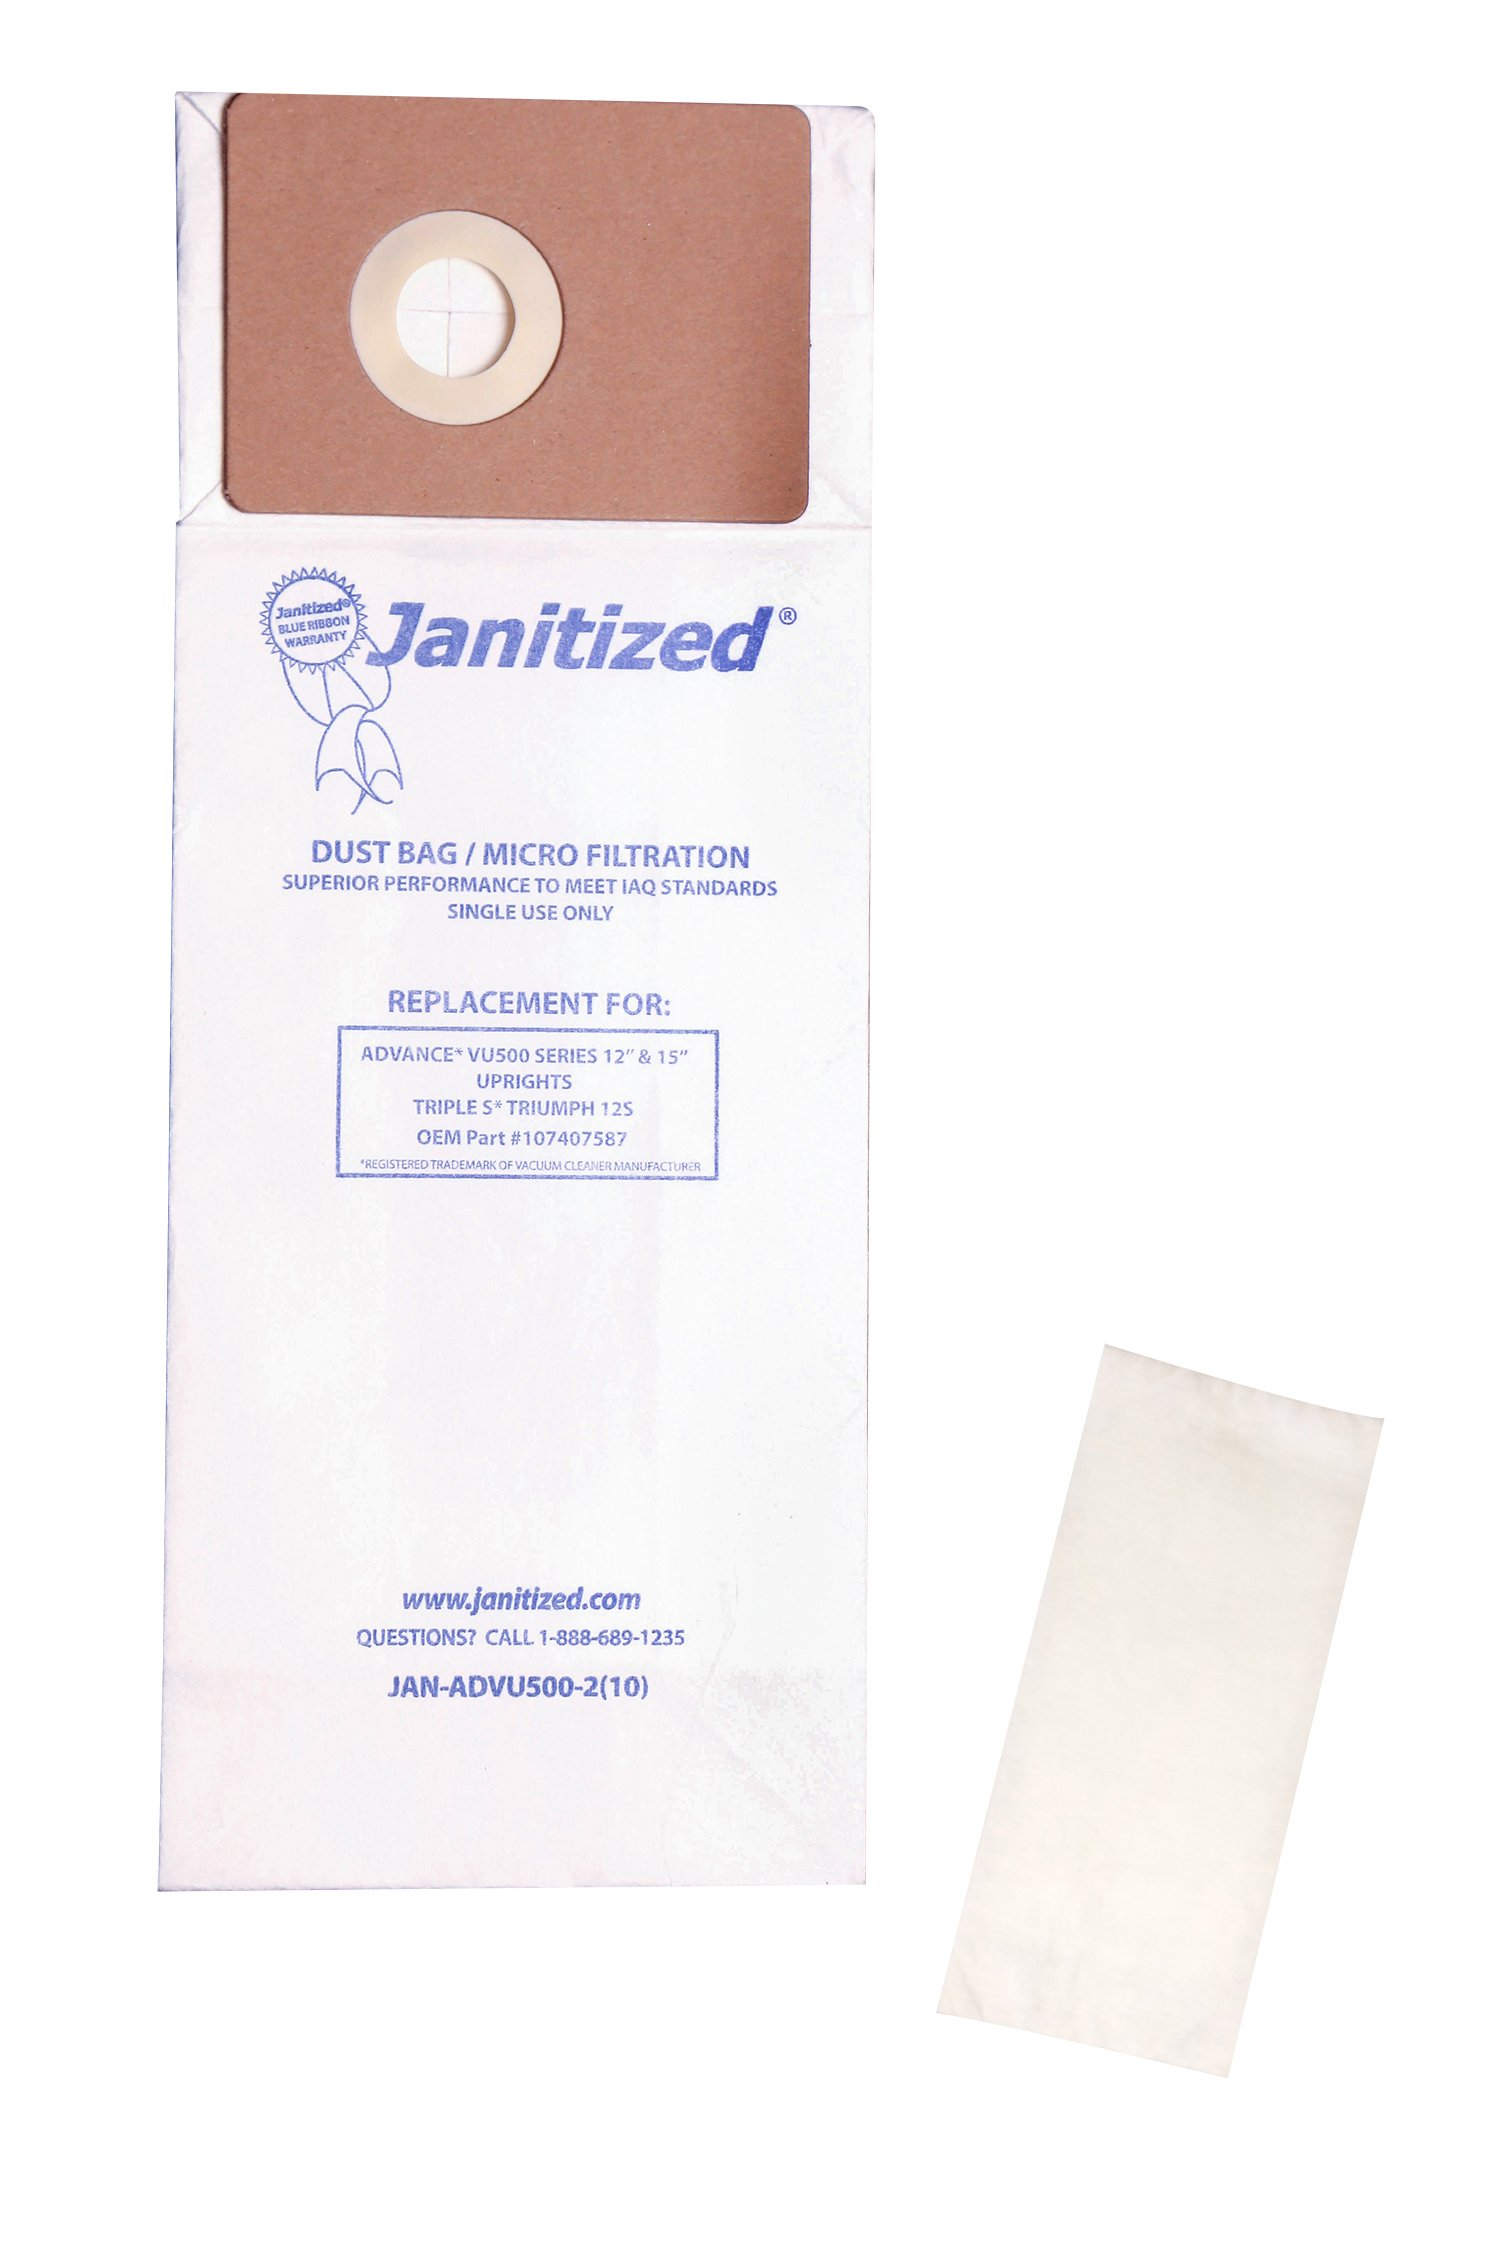 Janitized JAN-ADVU500-2(10) Premium Replacement Commercial Vacuum Paper Bag for Advance VU500 Vacuum Cleaners, OEM#107407587, 107404820 (Pack of 100) by Janitized